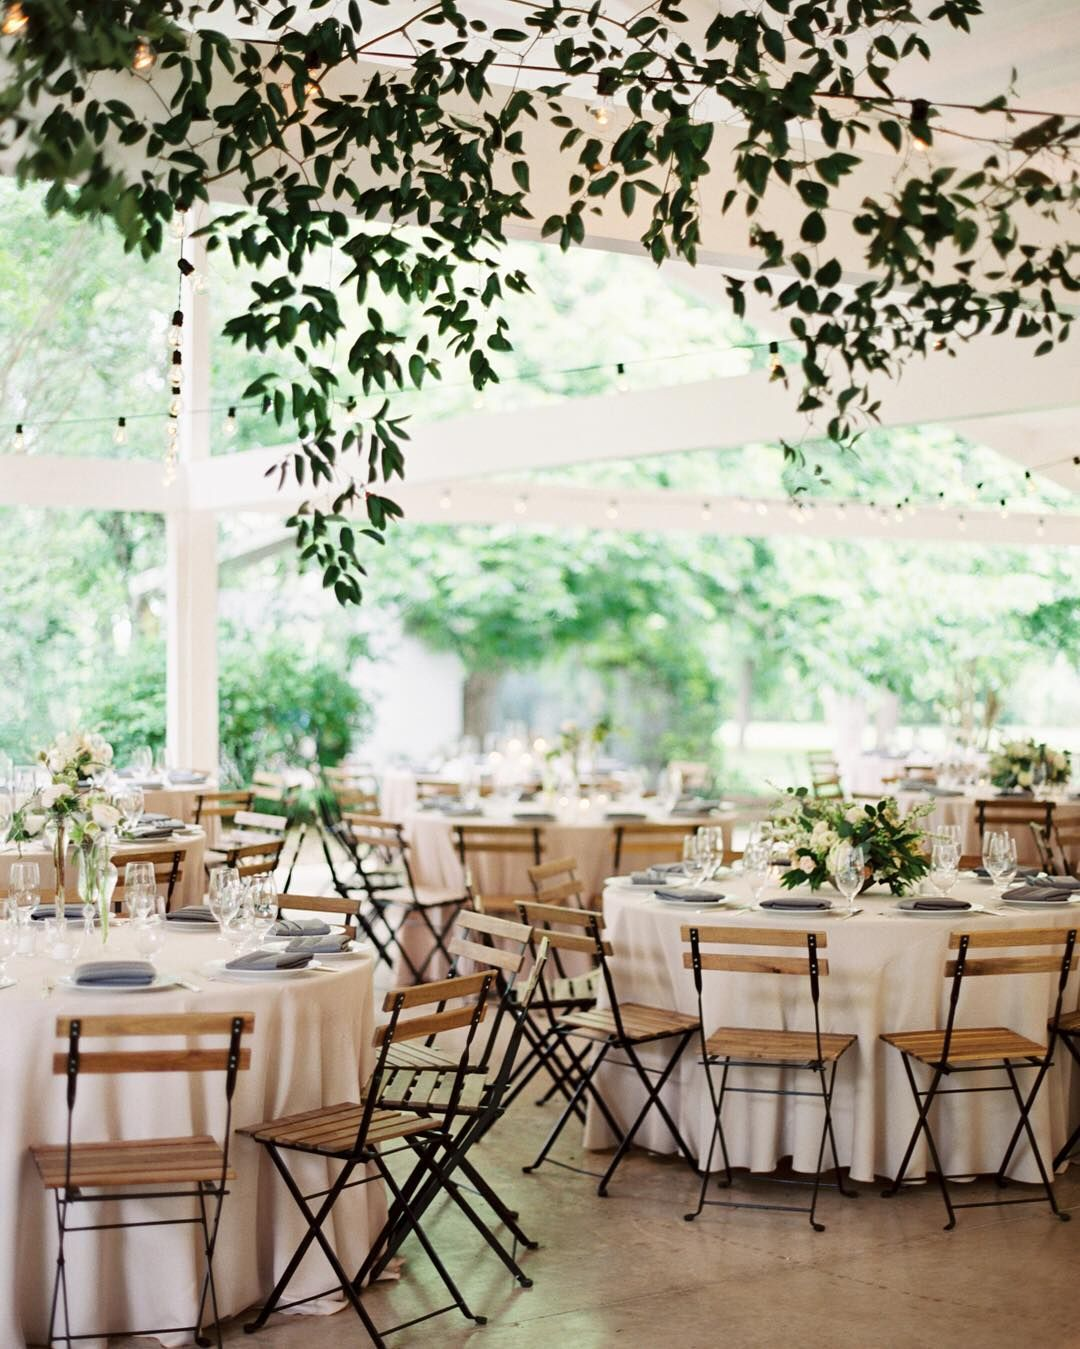 Garden wedding reception decor  beautiful hanging vines at a wedding reception  Wedding Reception